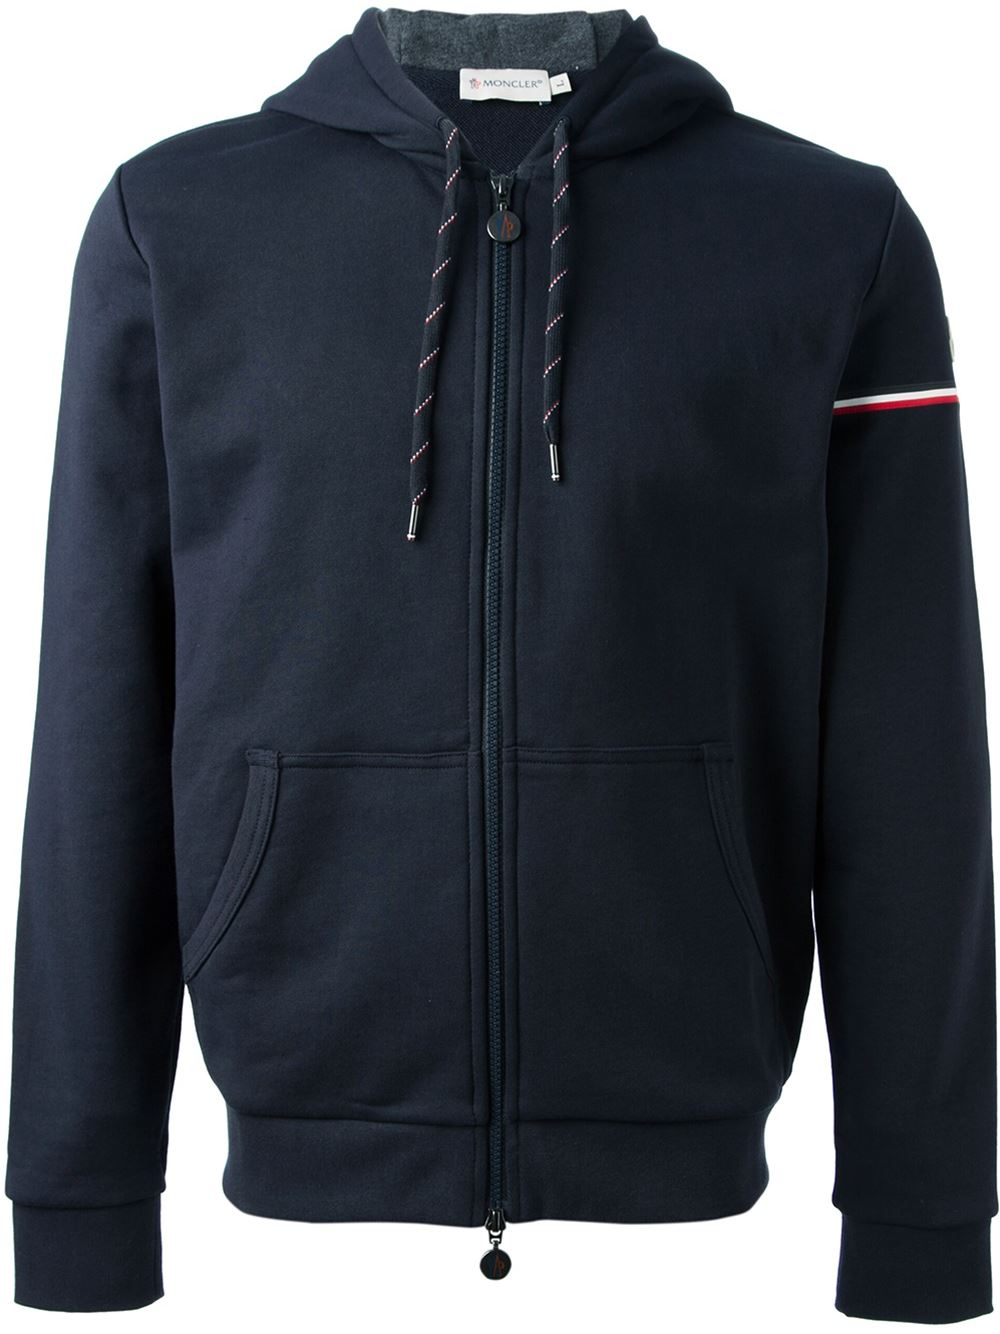 Crafted from soft cotton knit in classic navy, Moncler's Maglia jacket is panelled with tonal quilted technical fabric that's insulated with lightweight down fill. The patchwork pockets and two-way zip make this a must-have city look. Style yours with ankle boots and jeans at the weekend.